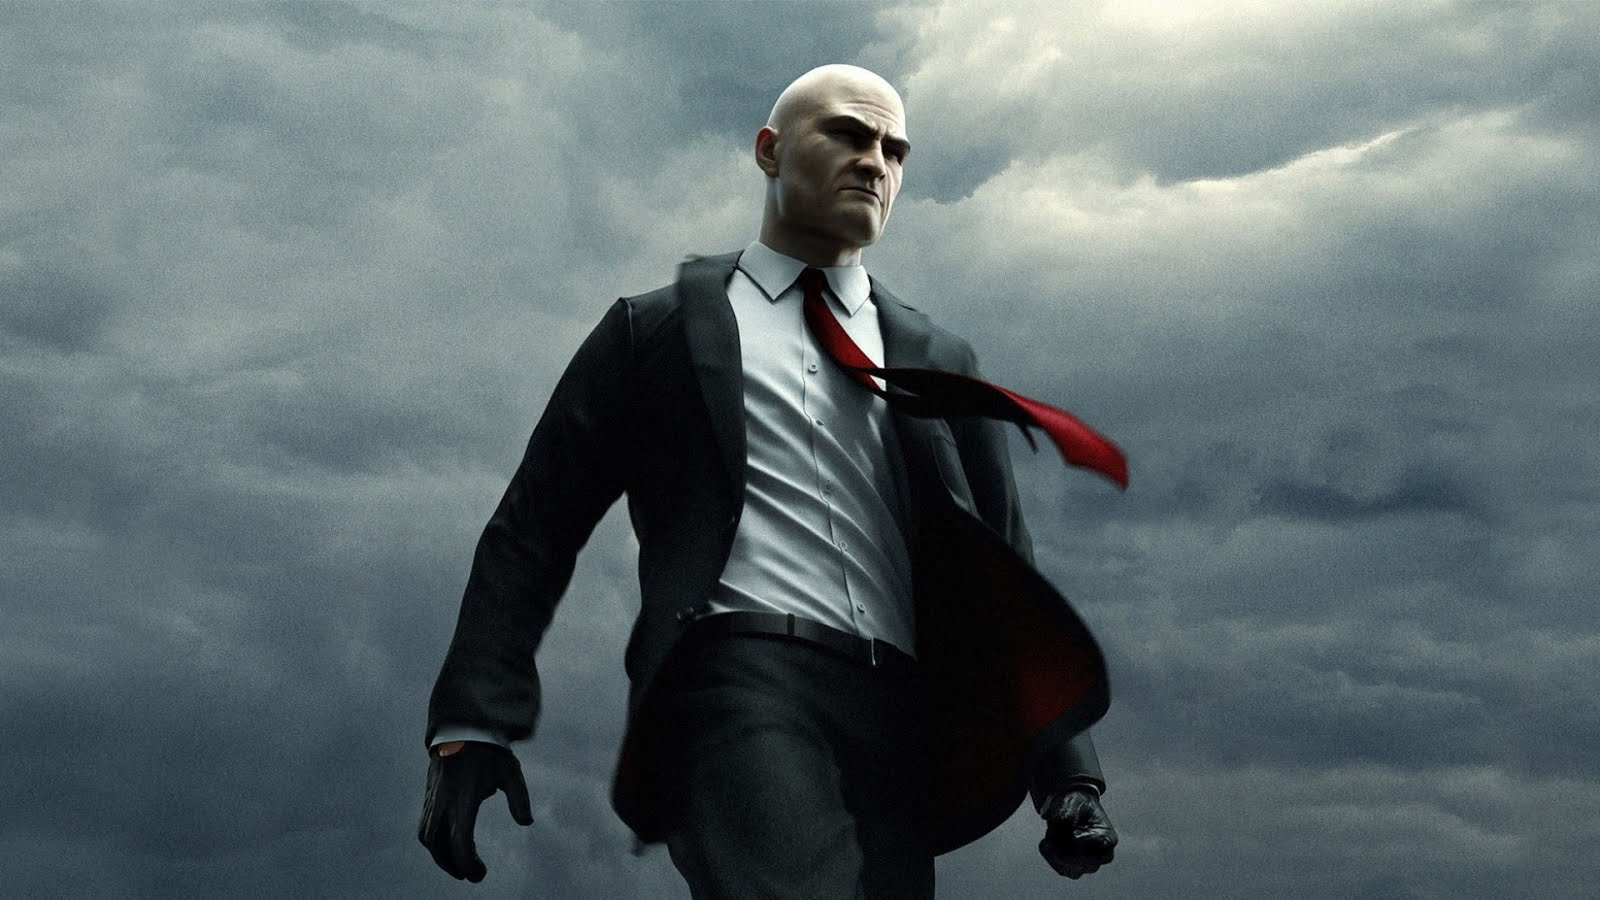 Hitman HD & Widescreen Wallpaper 0.060115859581173